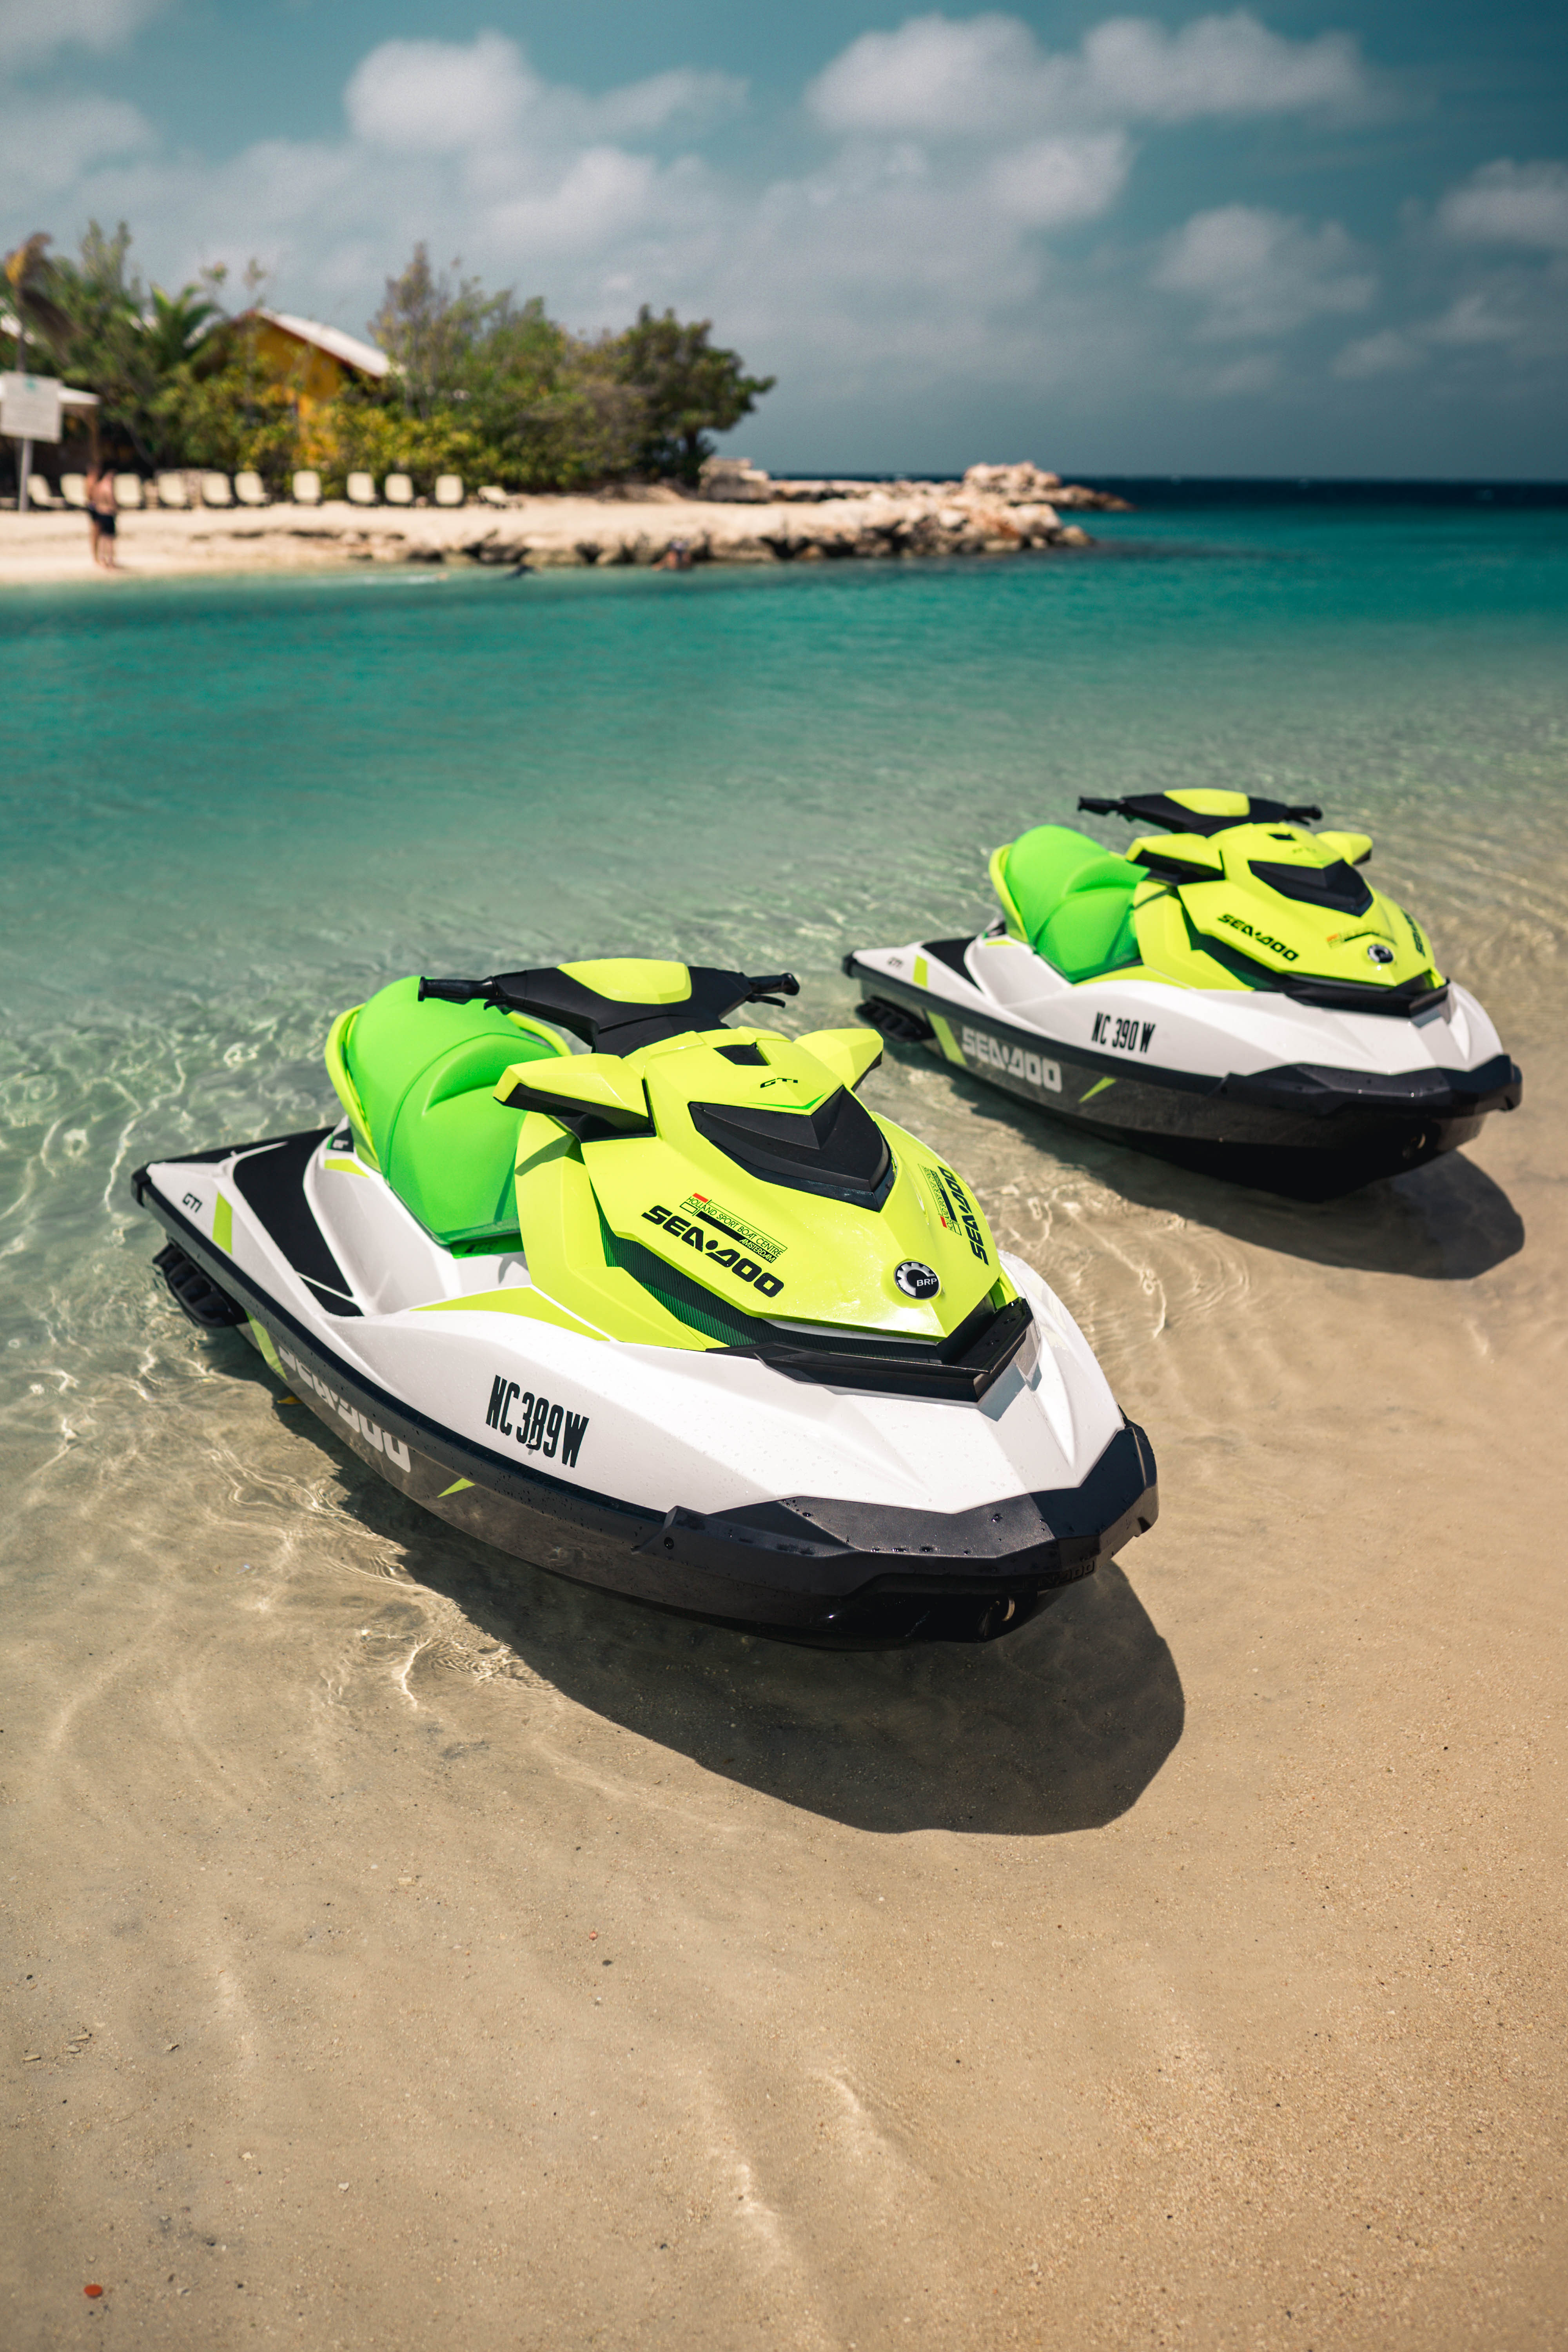 Chill Ride 4 Jetskis 1P each - 2 hrs